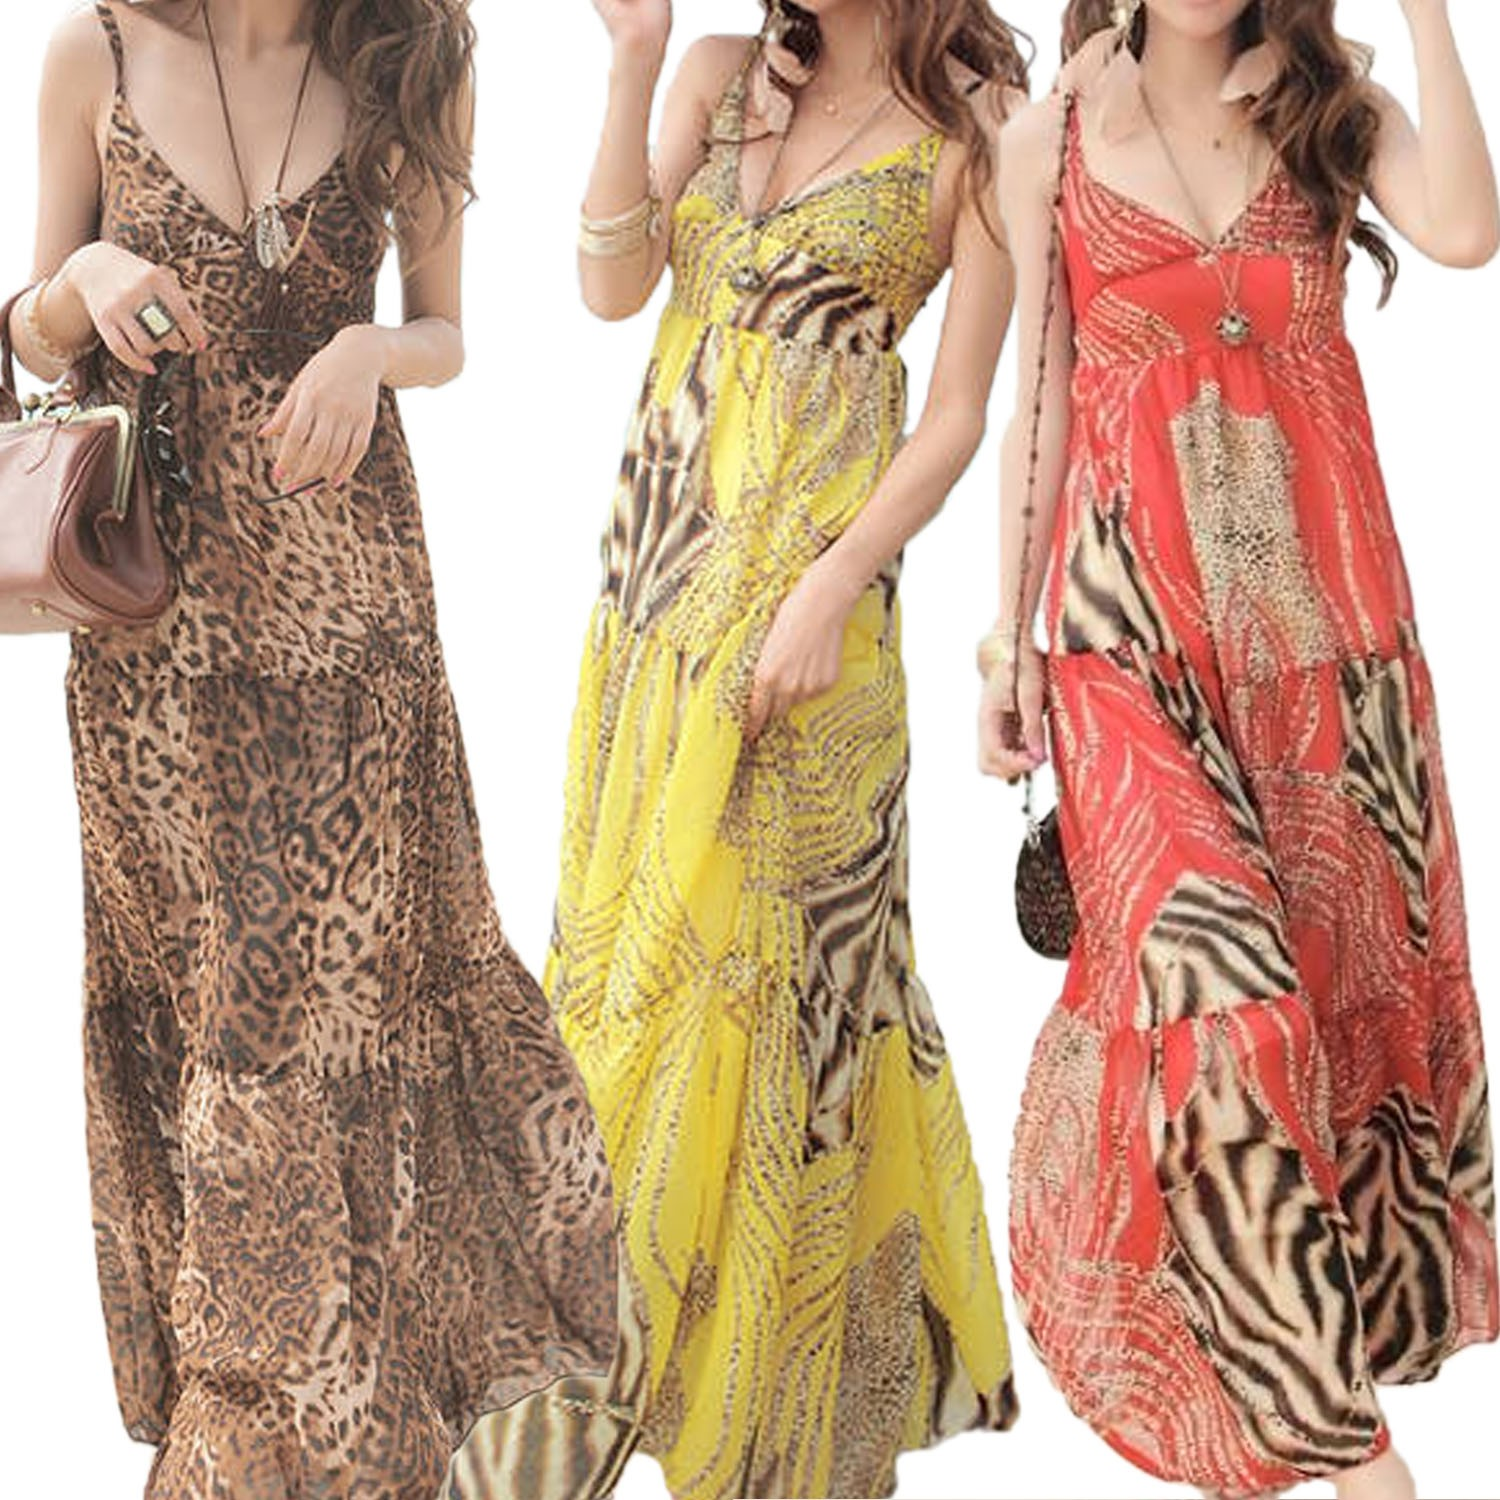 Bohemian Leopard Halter Neck Maxi Dress - 9504#